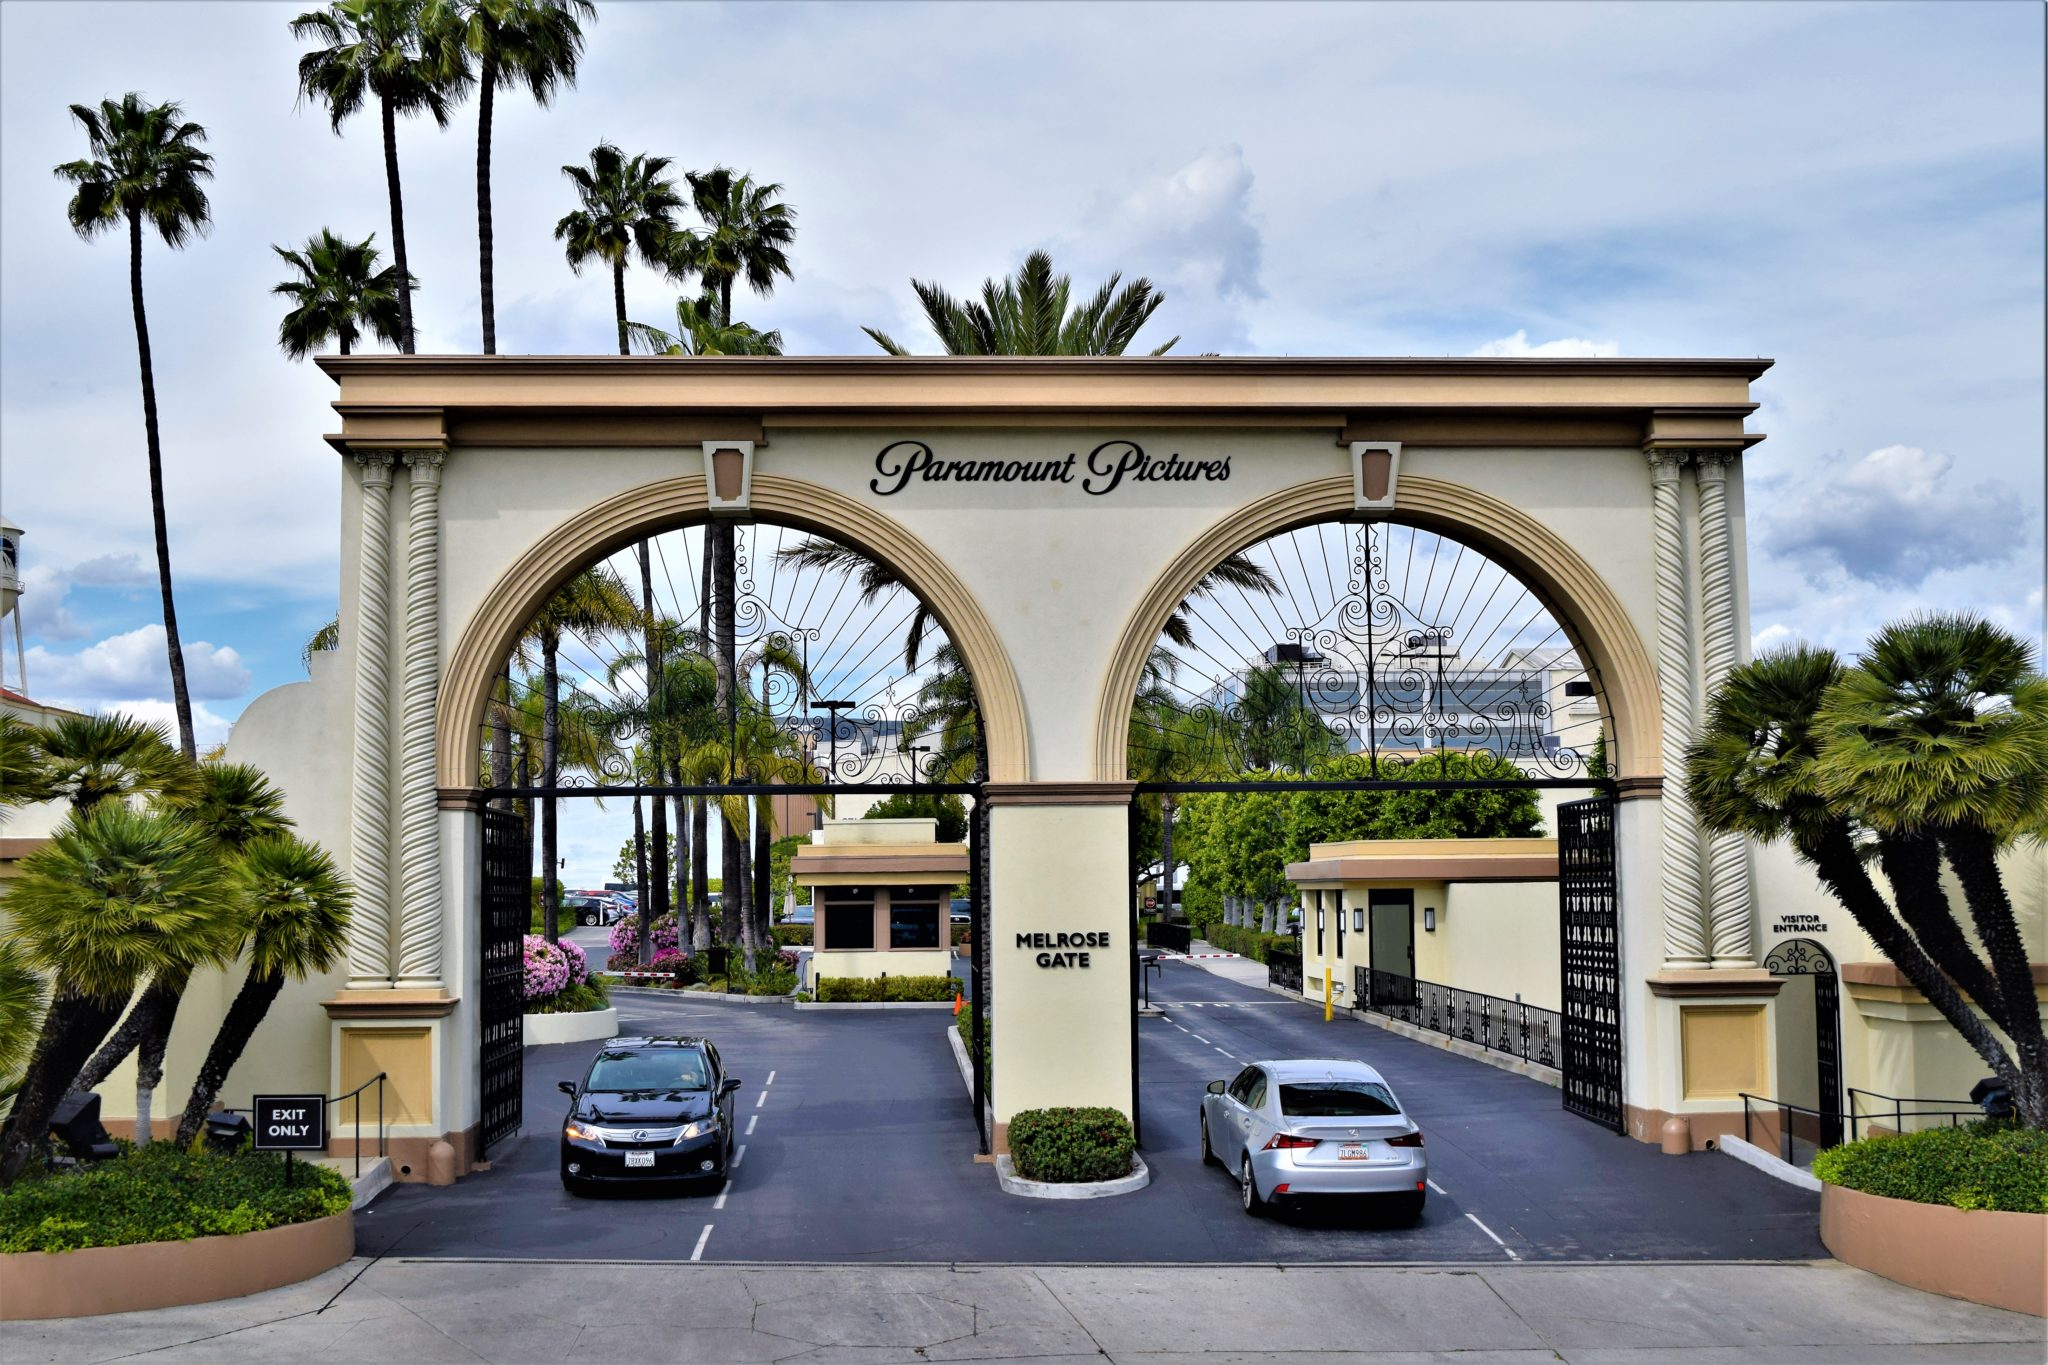 Paramount Pictures Studios, Los Angeles